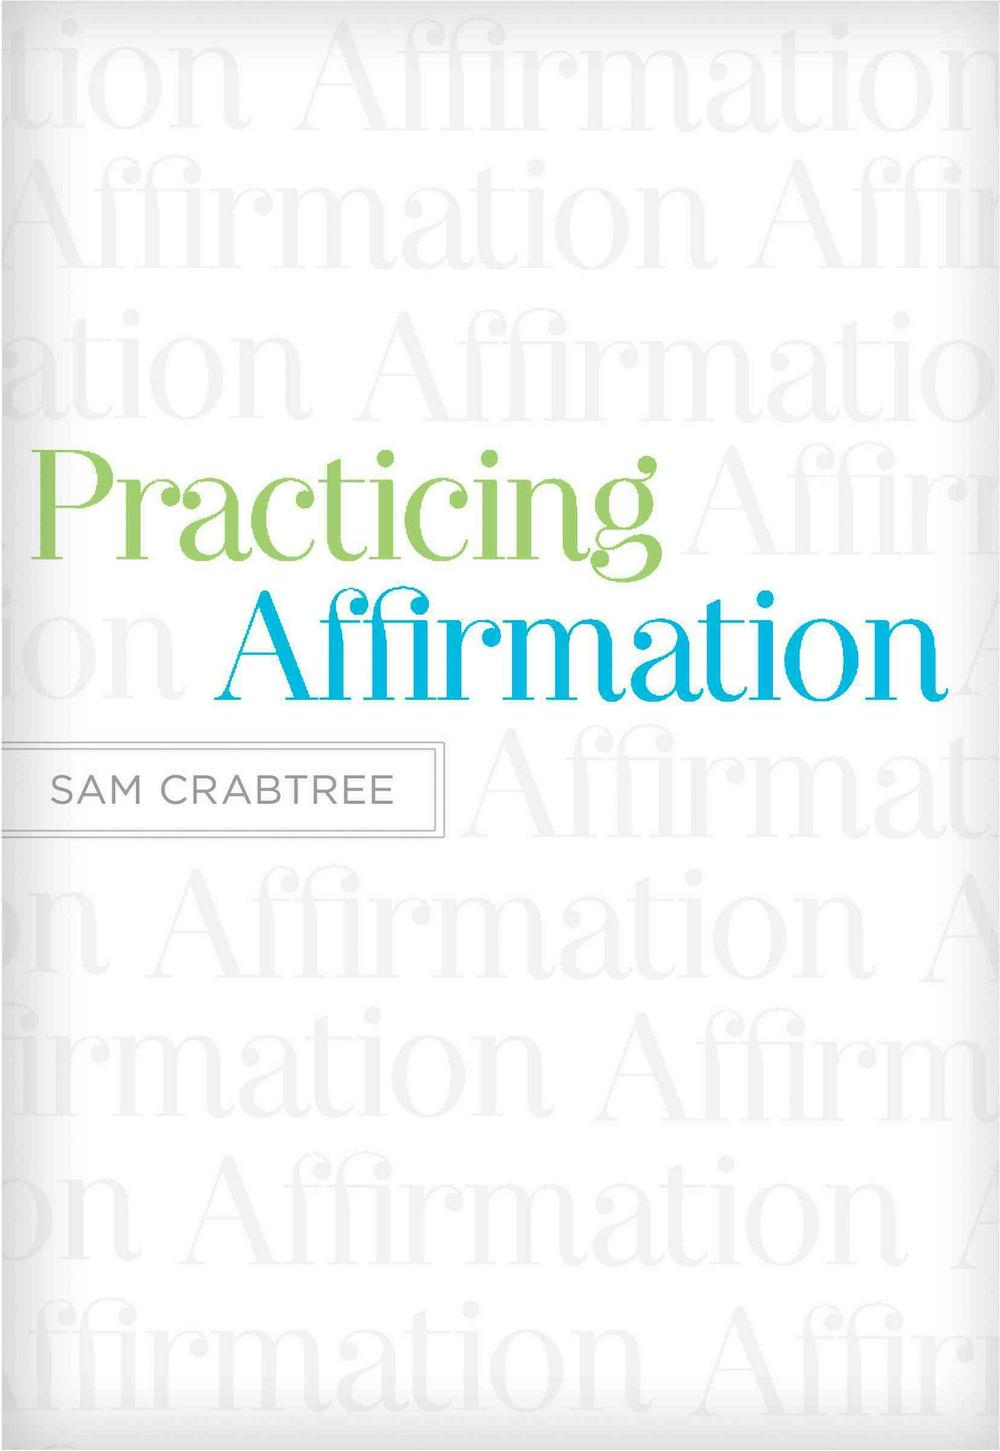 Practicing Affirmation by Sam Crabtree, ISBN: 9781433522437